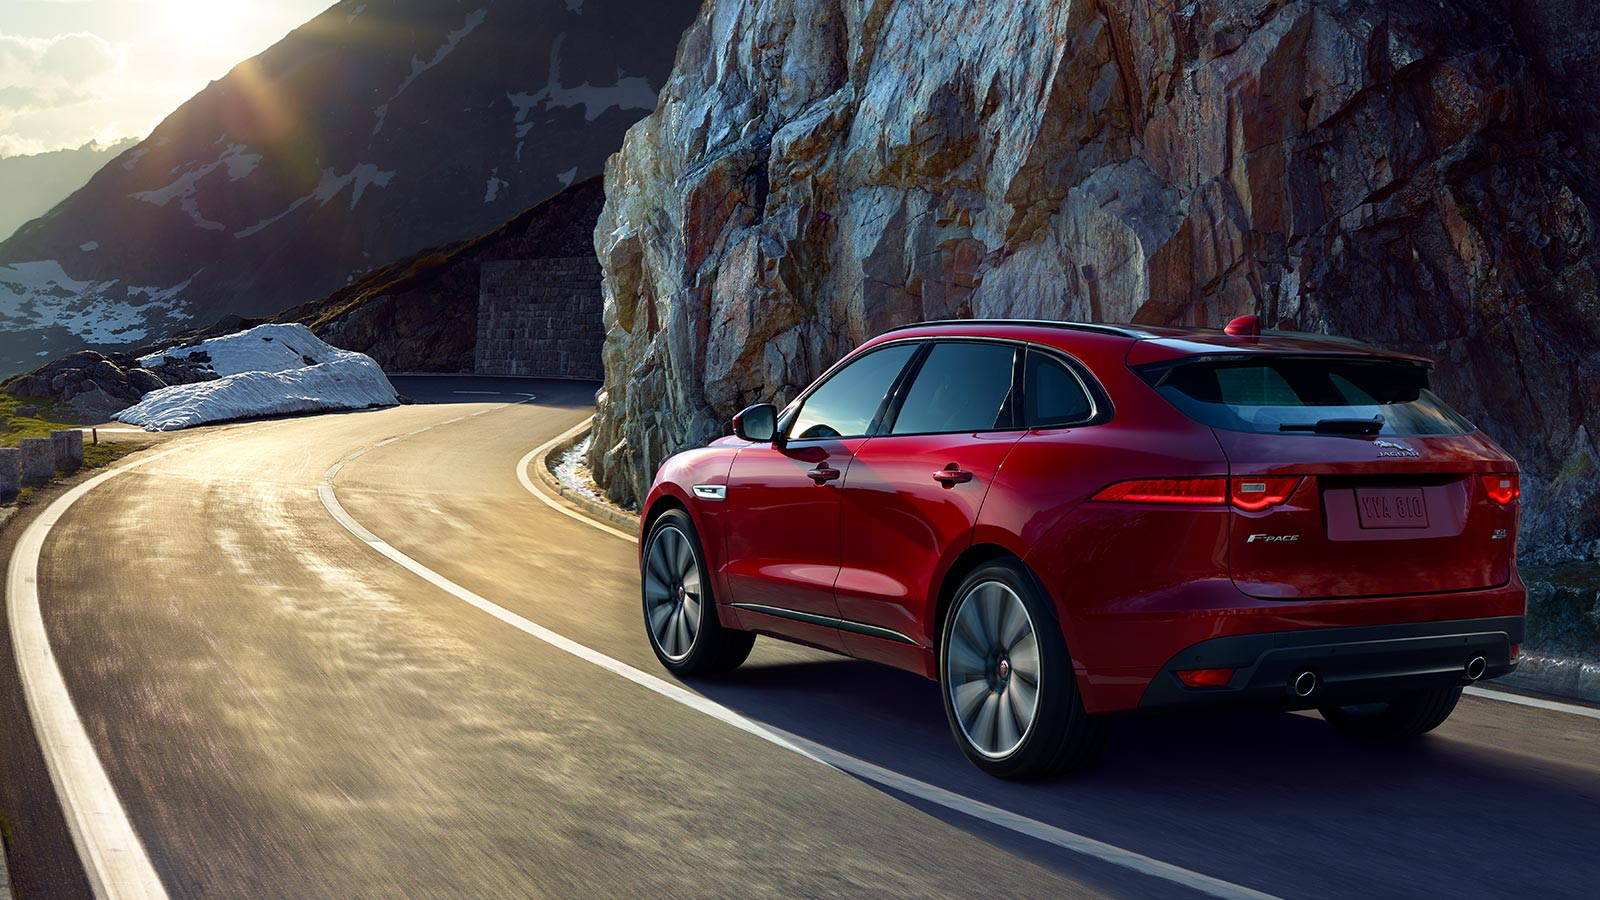 Jaguar F-PACE Red Exterior on road.